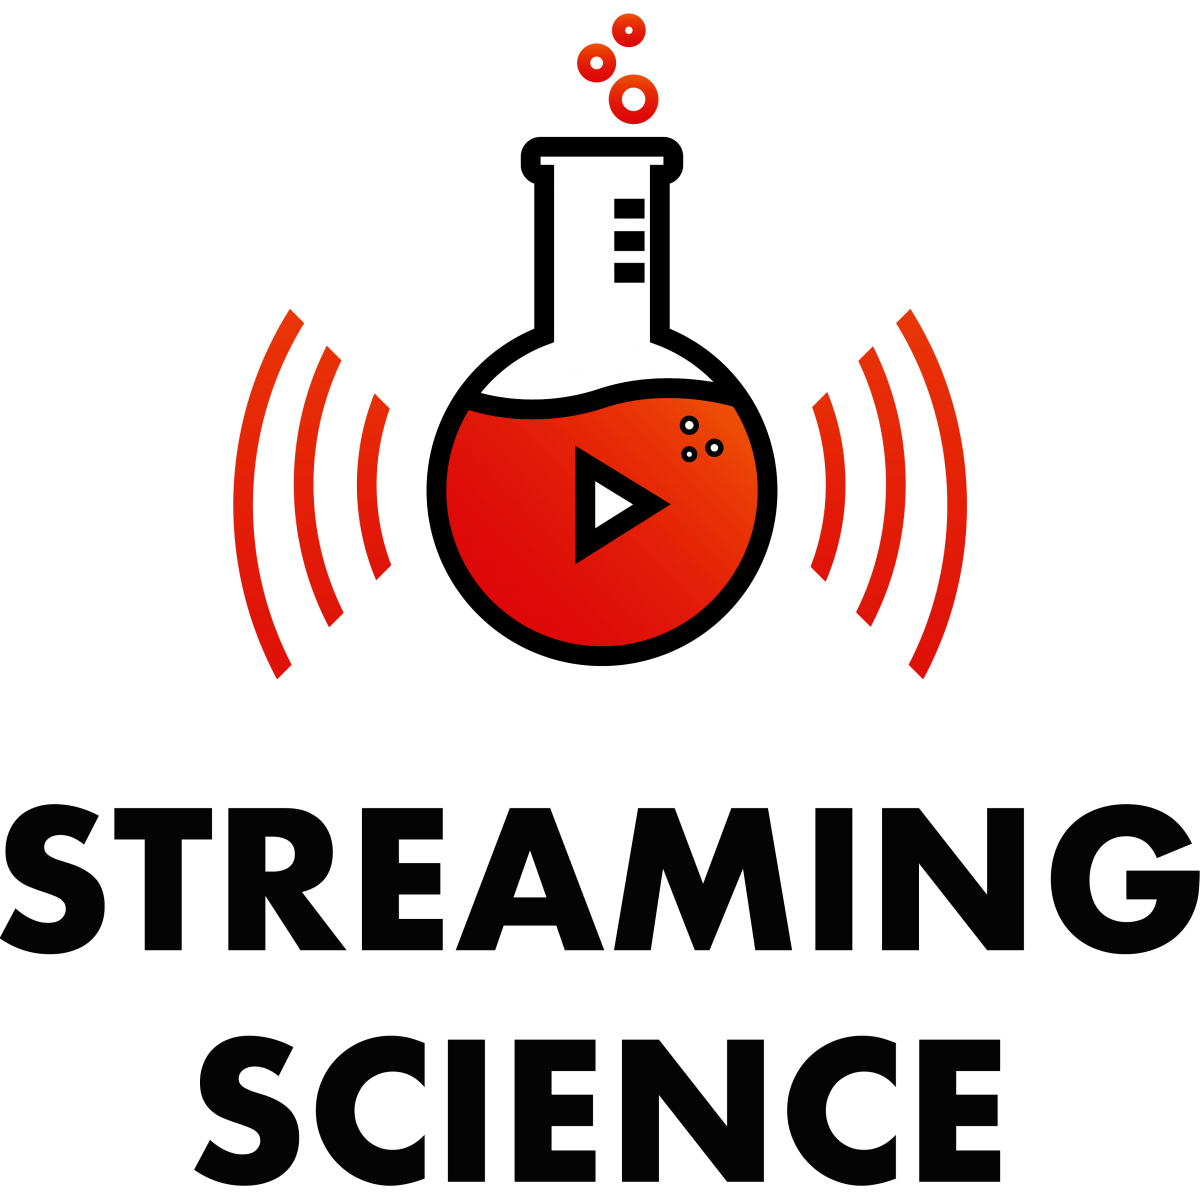 Streaming Science logo